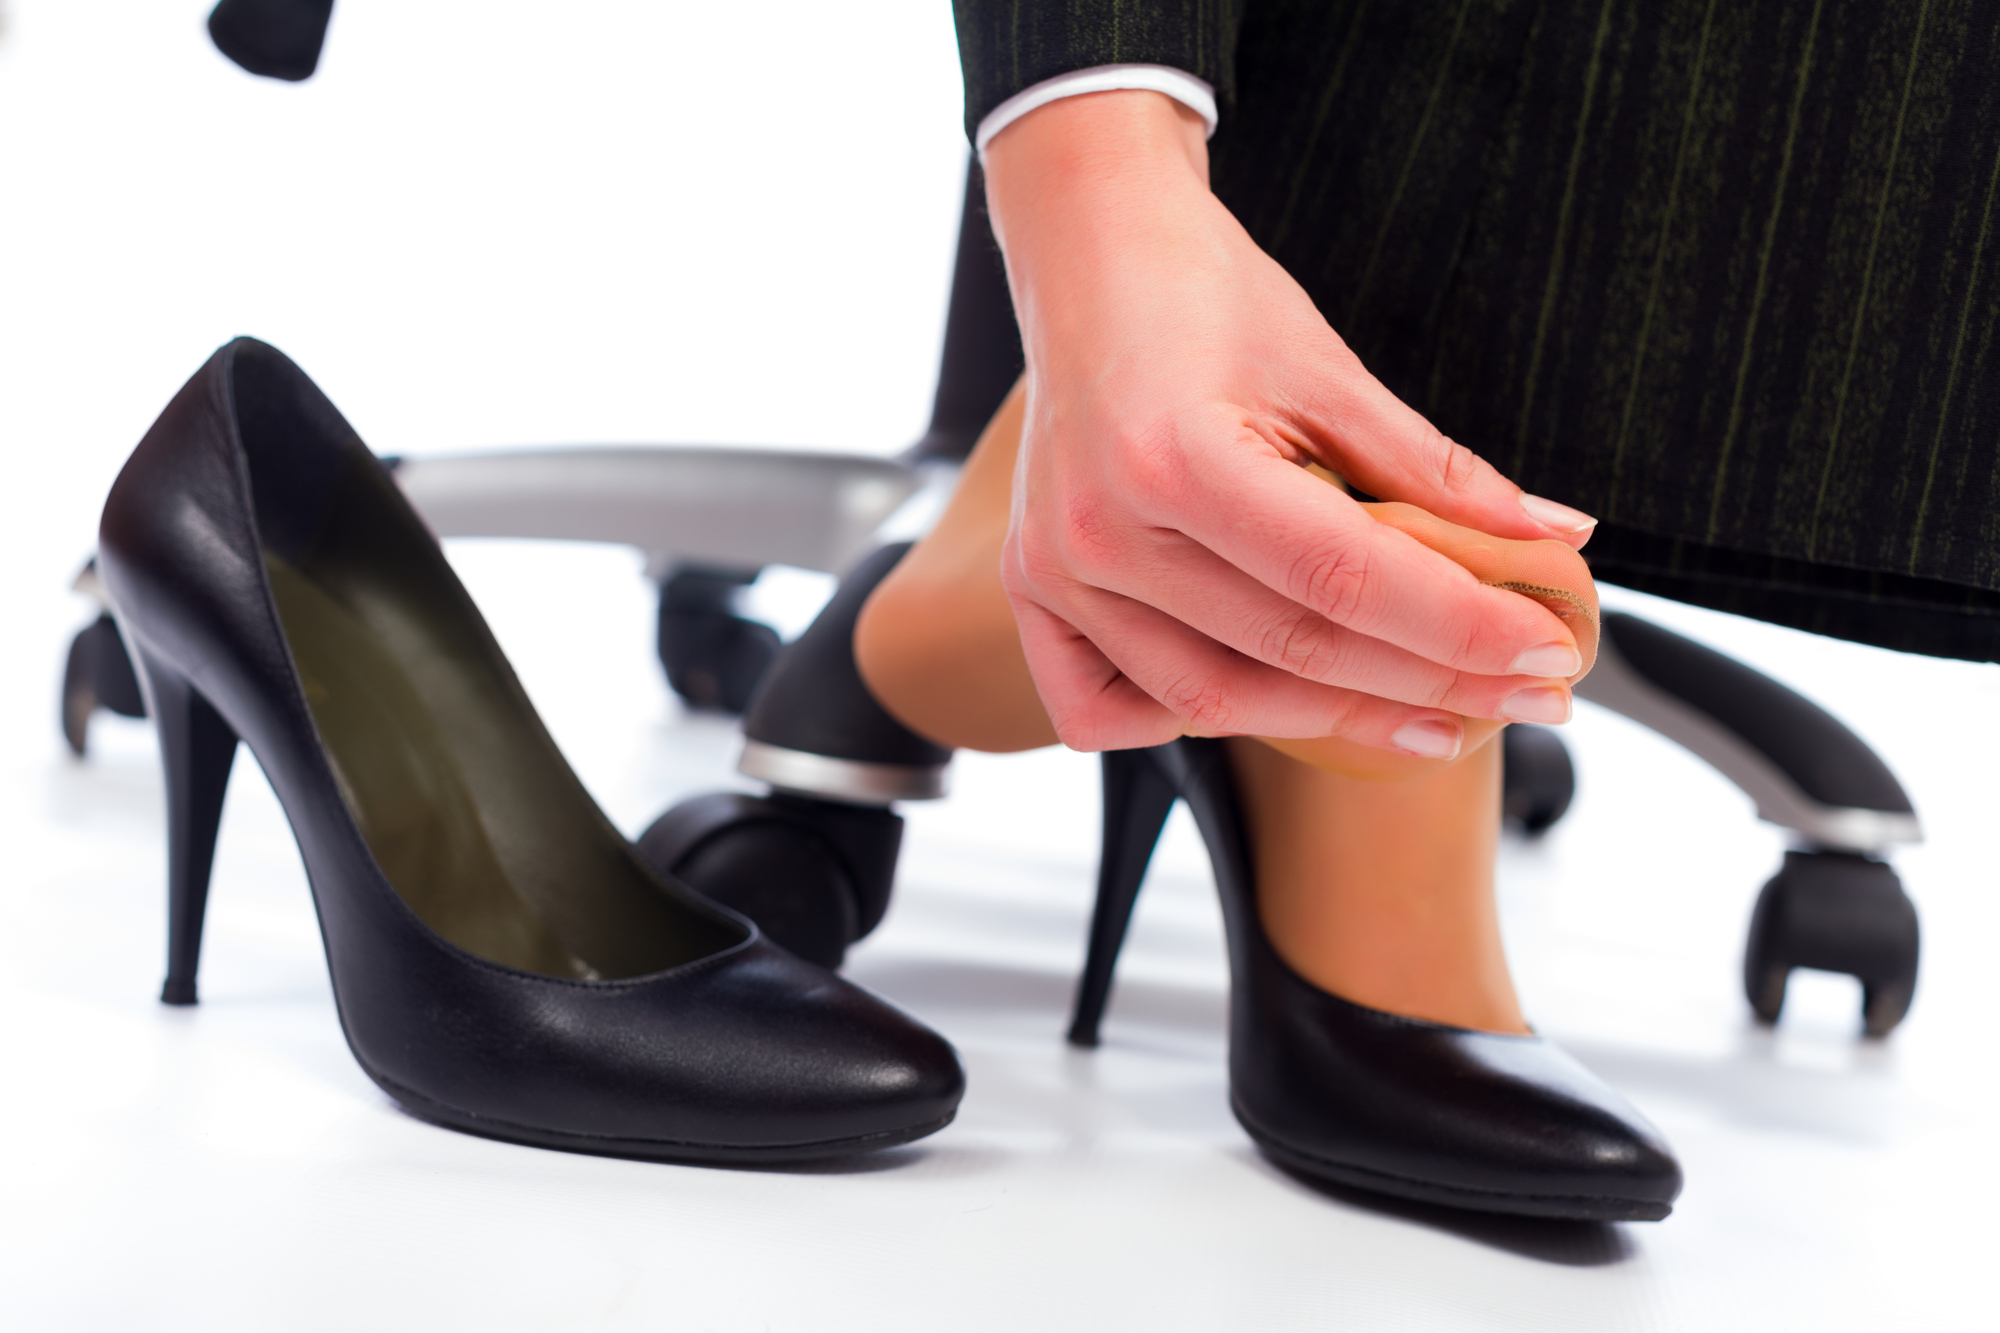 high-heels-cause-bunions